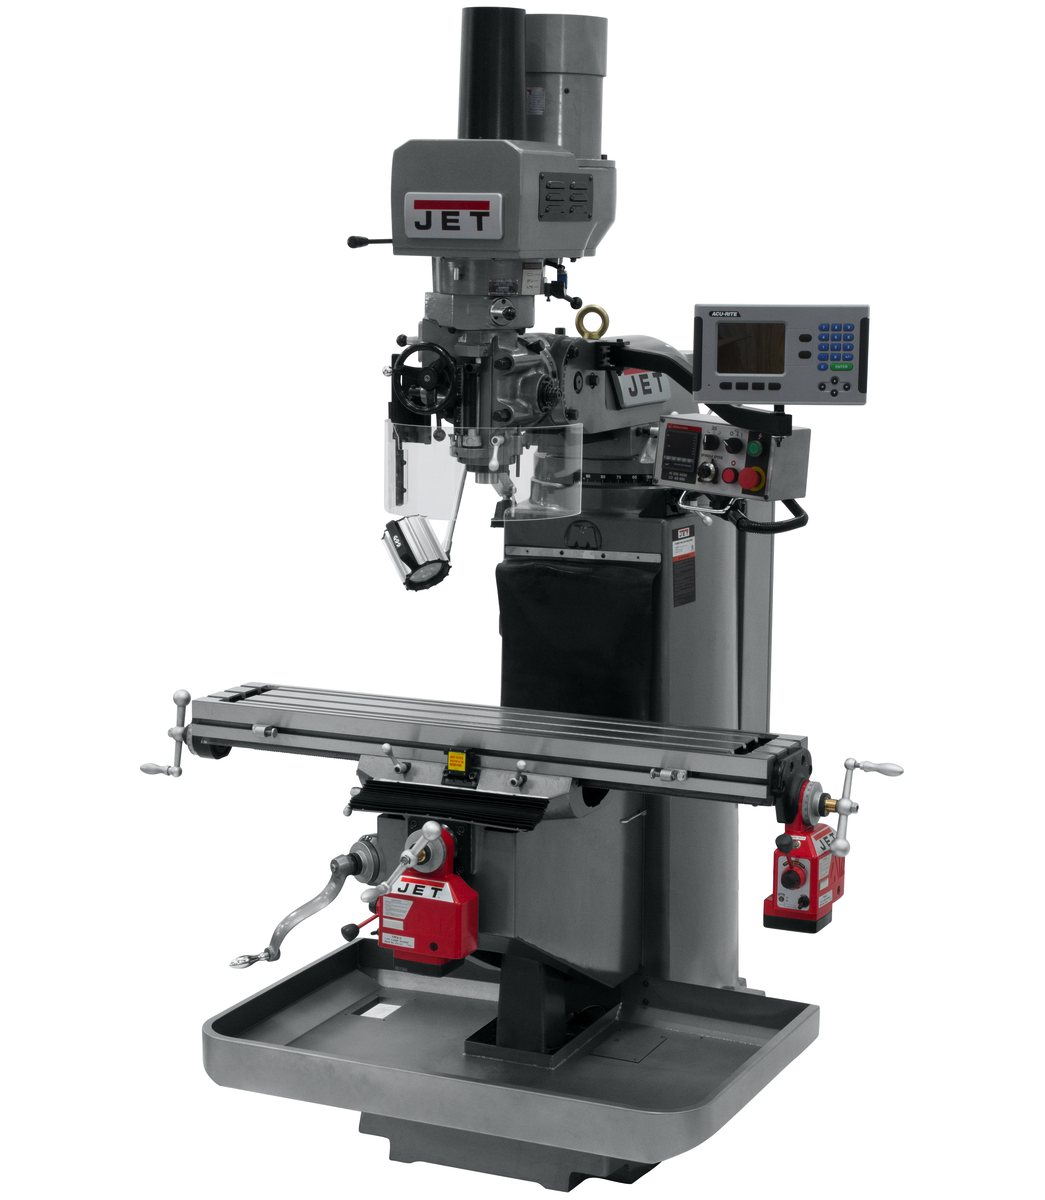 JTM-949EVS Mill With Acu-Rite 203 DRO With X and Y-Axis Powerfeeds and Air Powered Drawbar